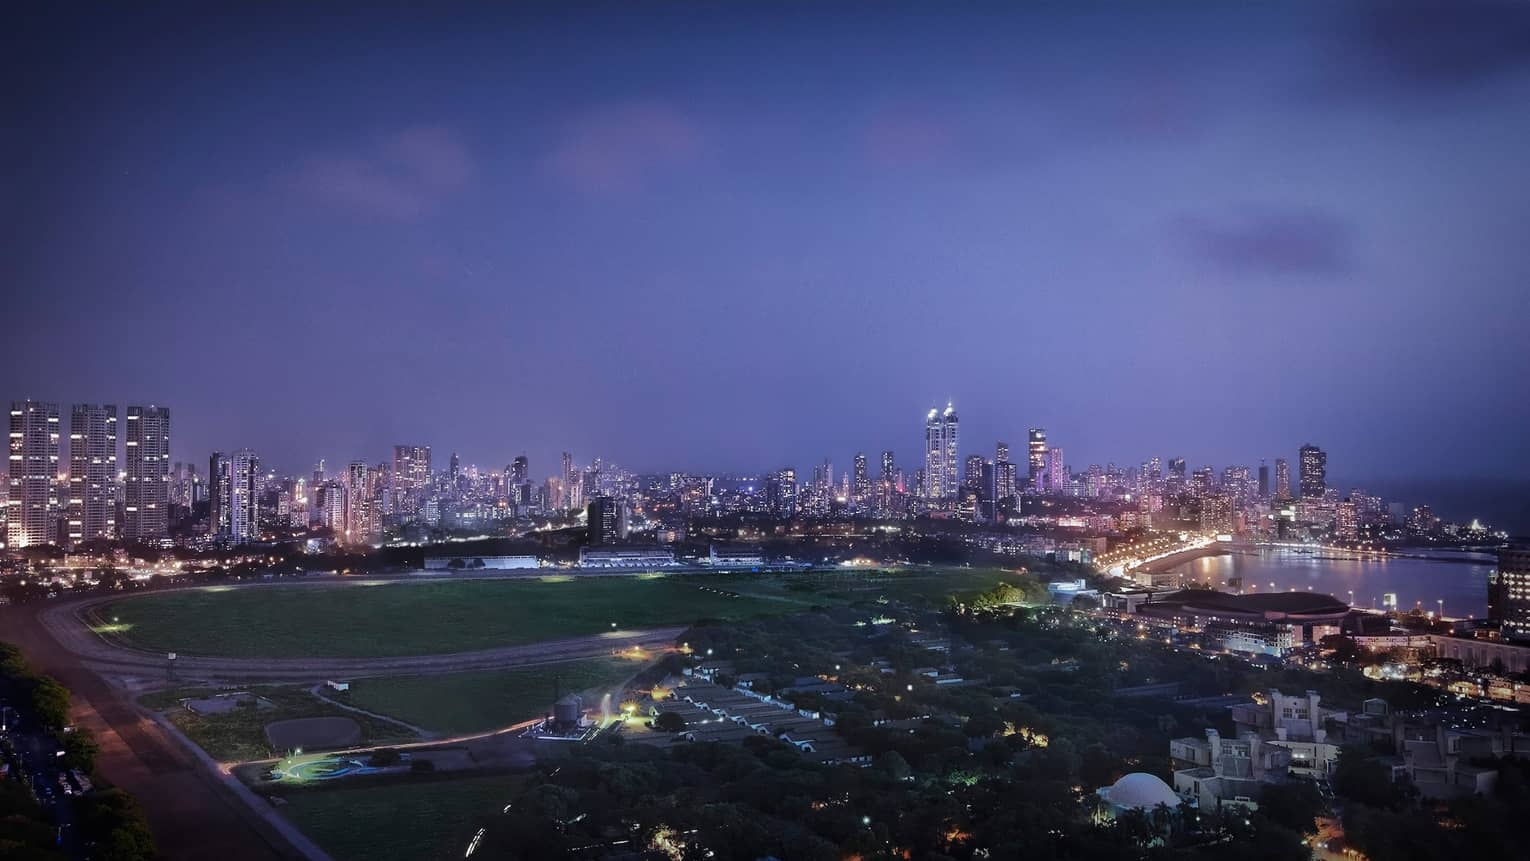 View over large field, track, Mumbai city skyline with buildings, lights at dusk